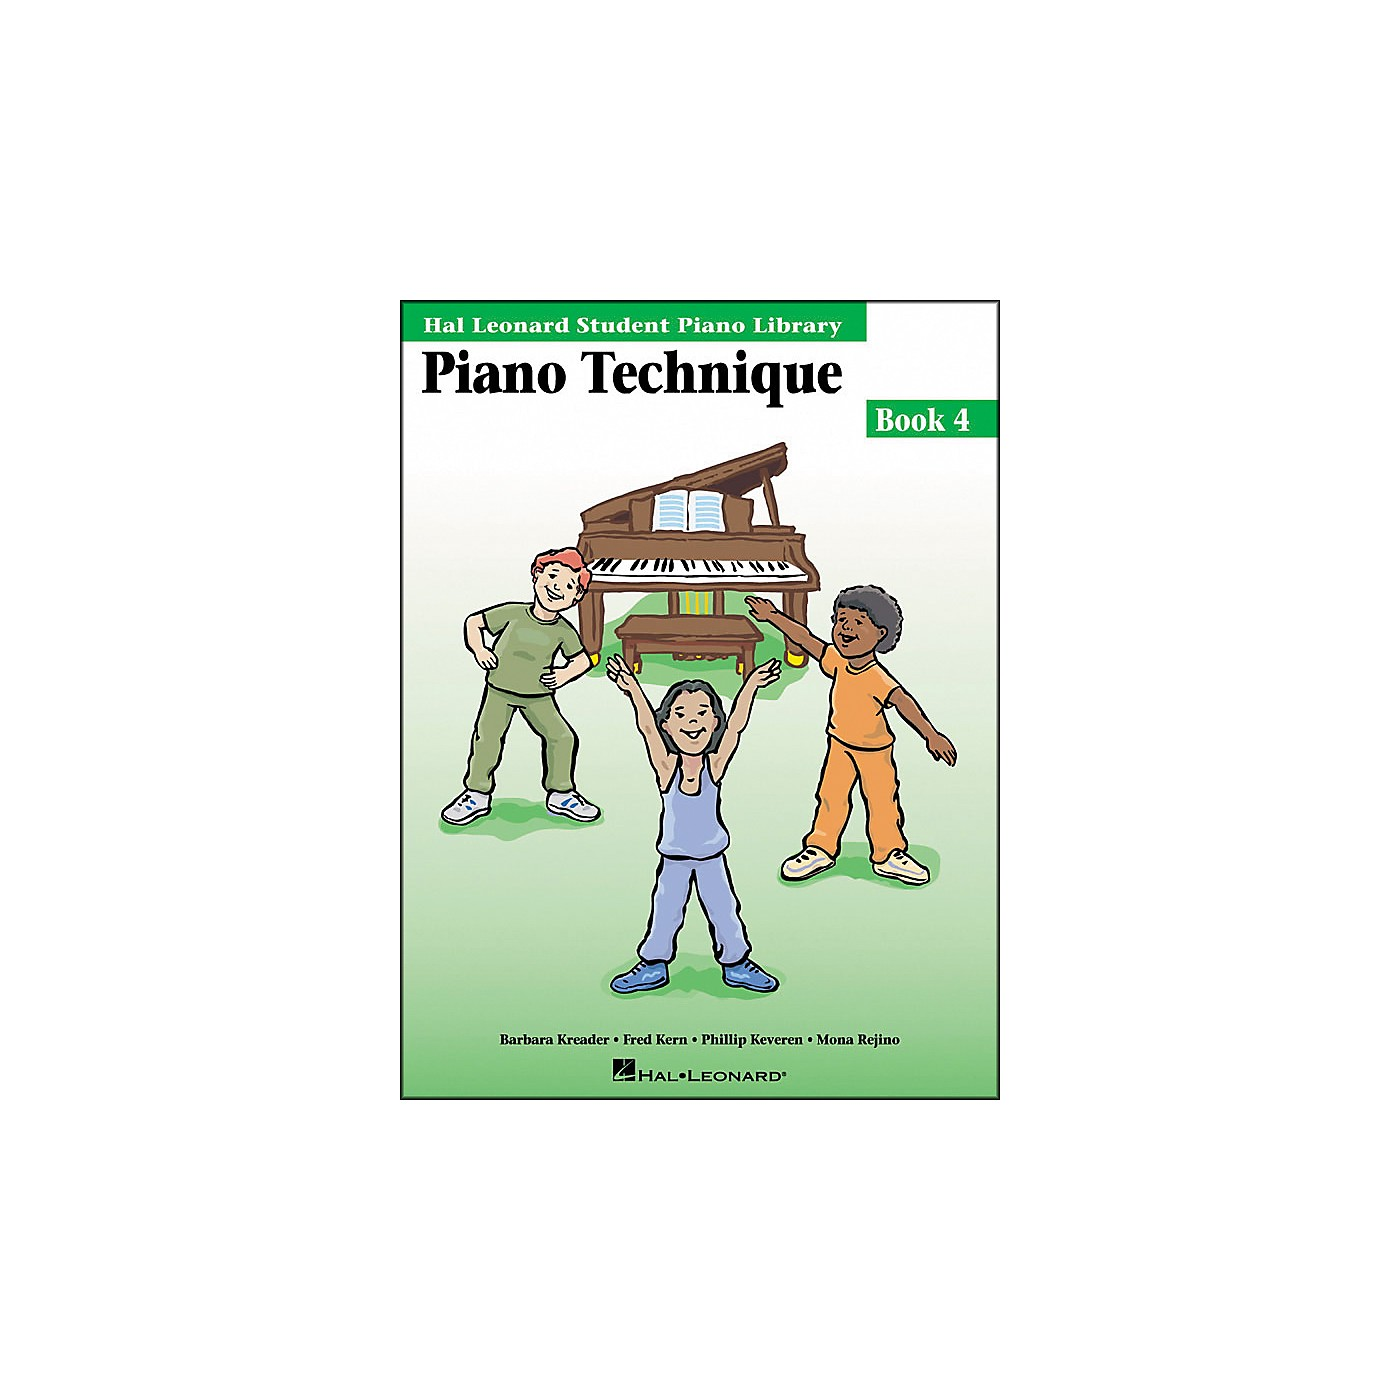 Hal Leonard Piano Technique Book 4 Hal Leonard Student Piano Library thumbnail